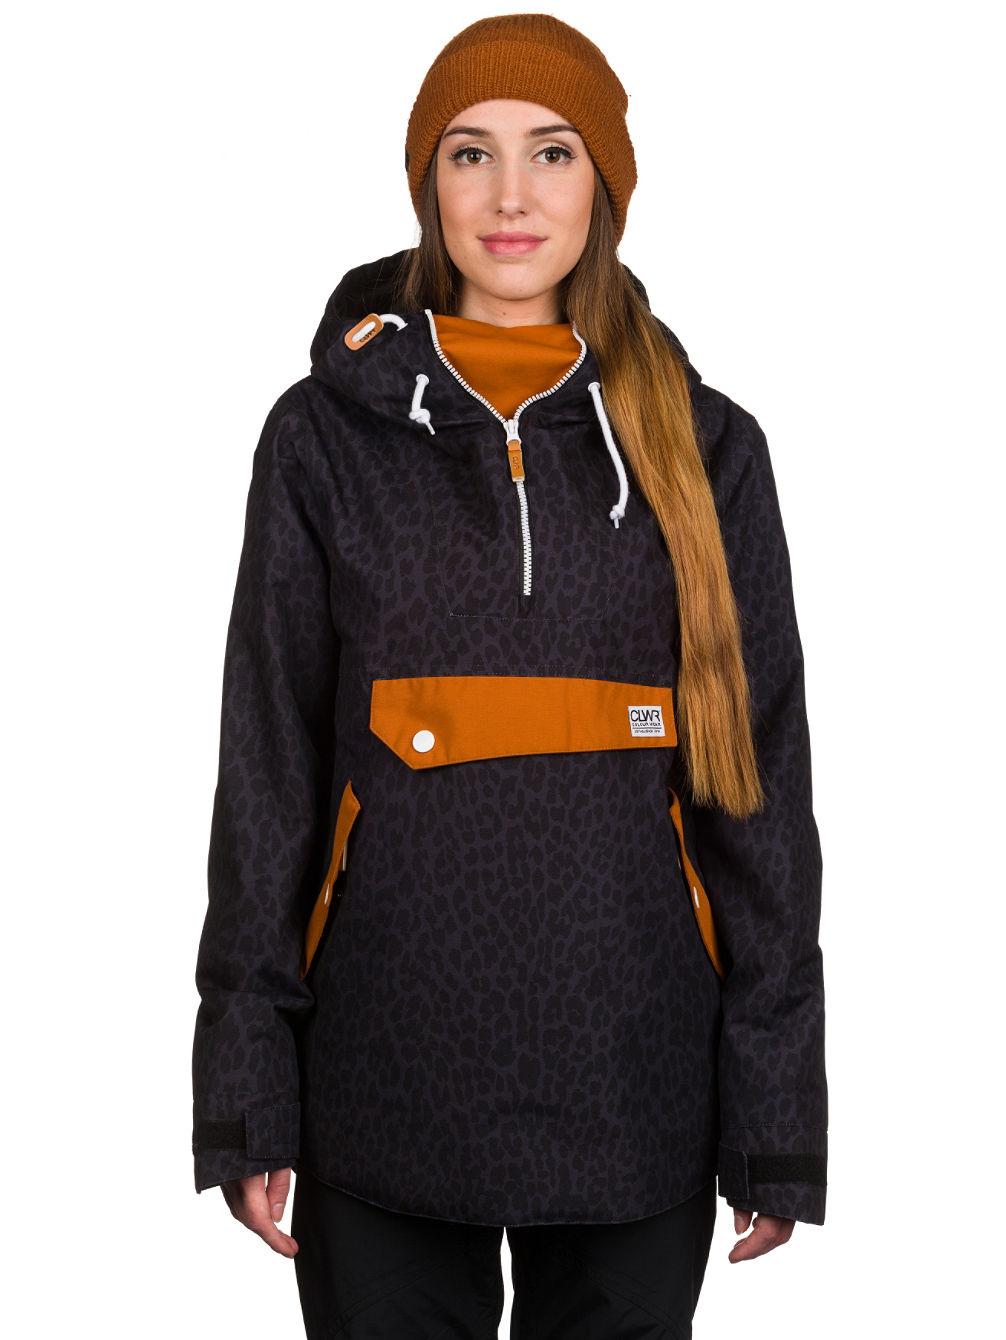 Buy CLWR Recruit Anorak Jacket online at blue-tomato.com ddd832e2a